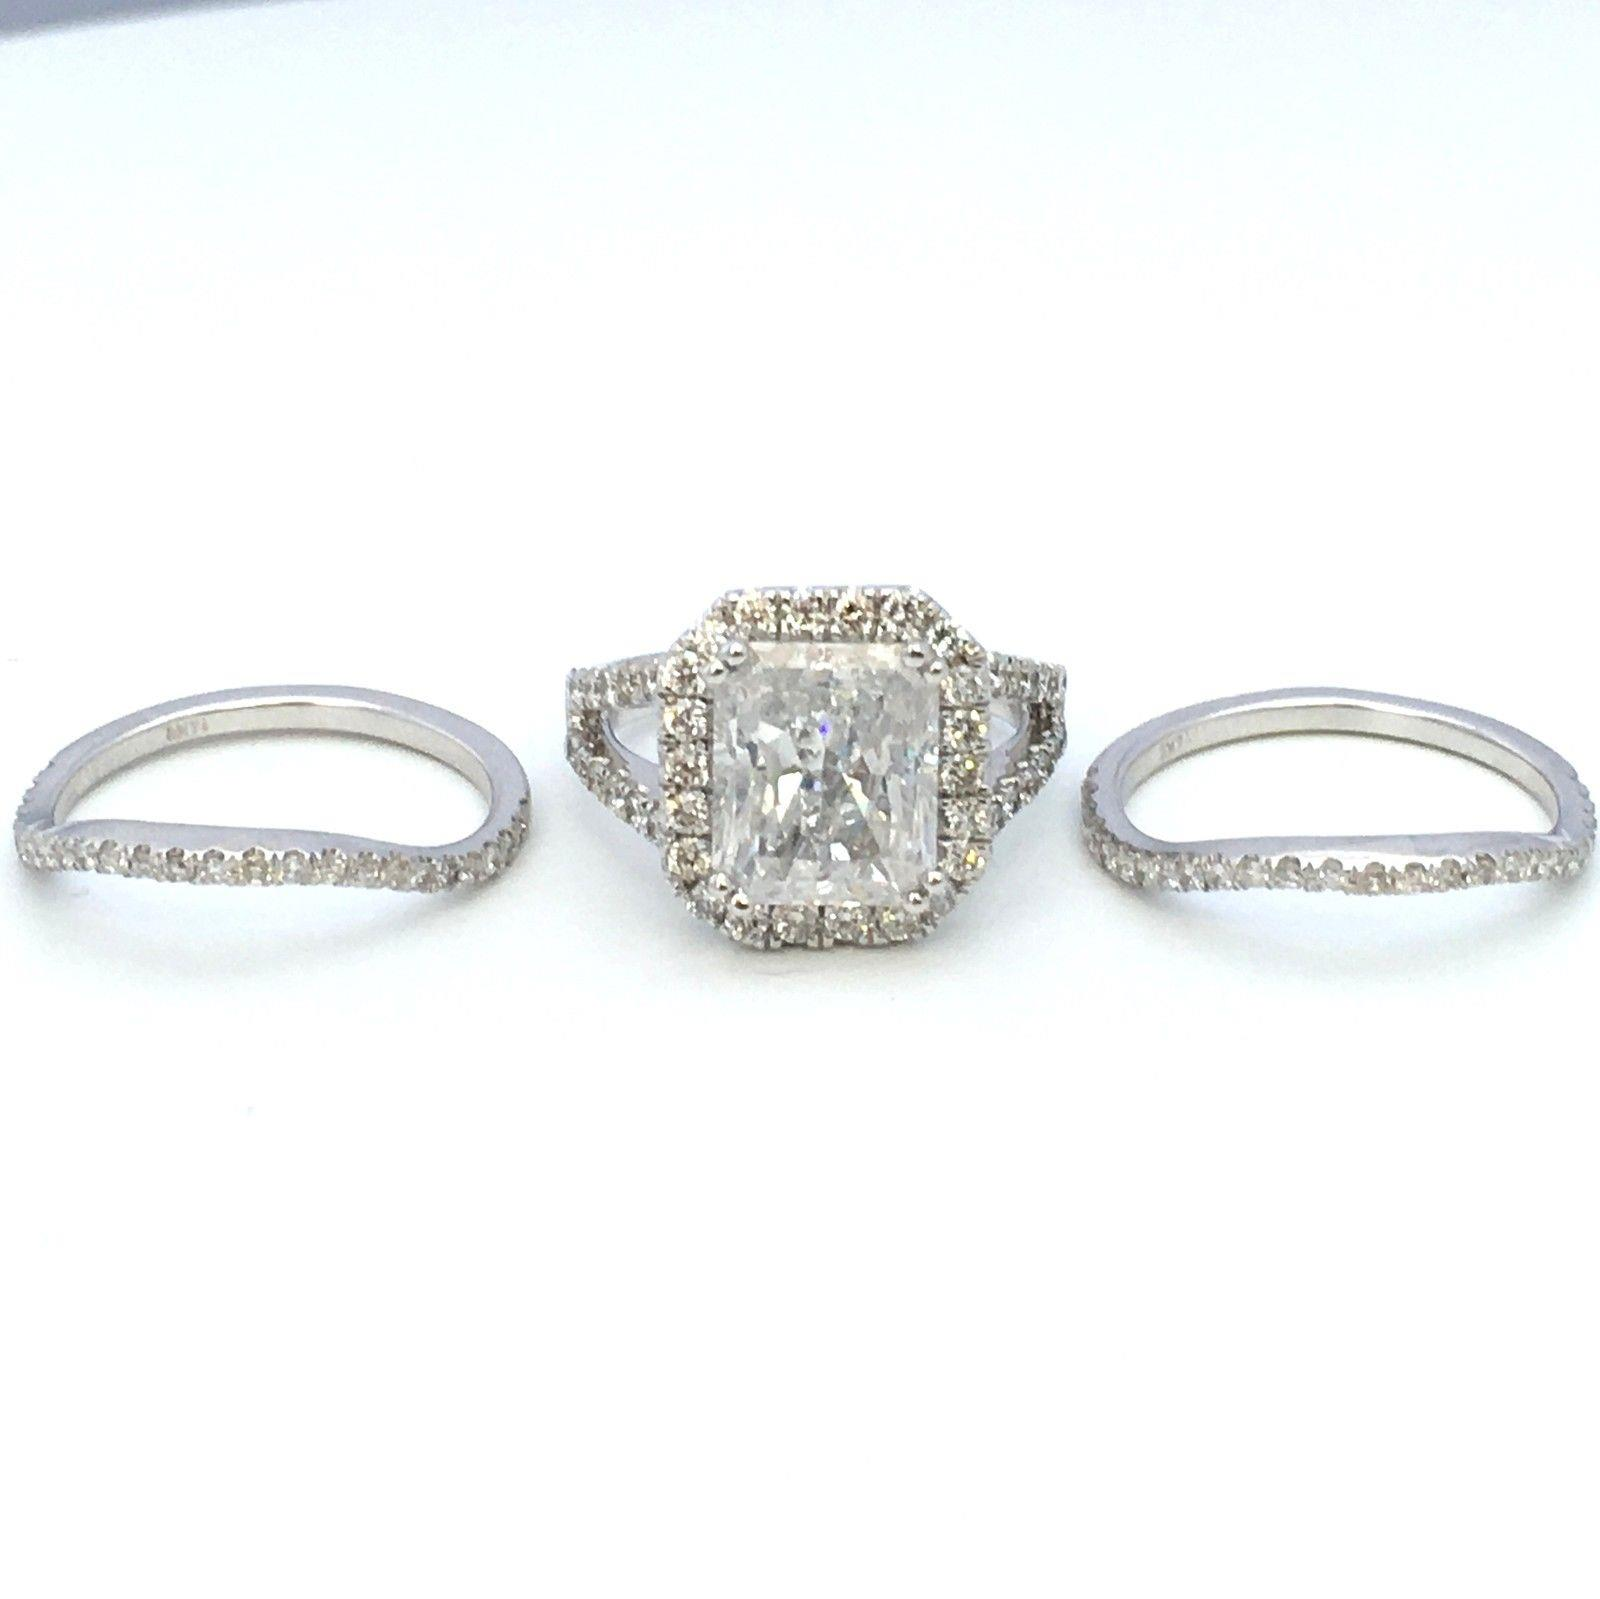 Halo Diamond Ring Vs1 D Colorless Flawless 5 Ct Accents Women 18 Kt White Gold